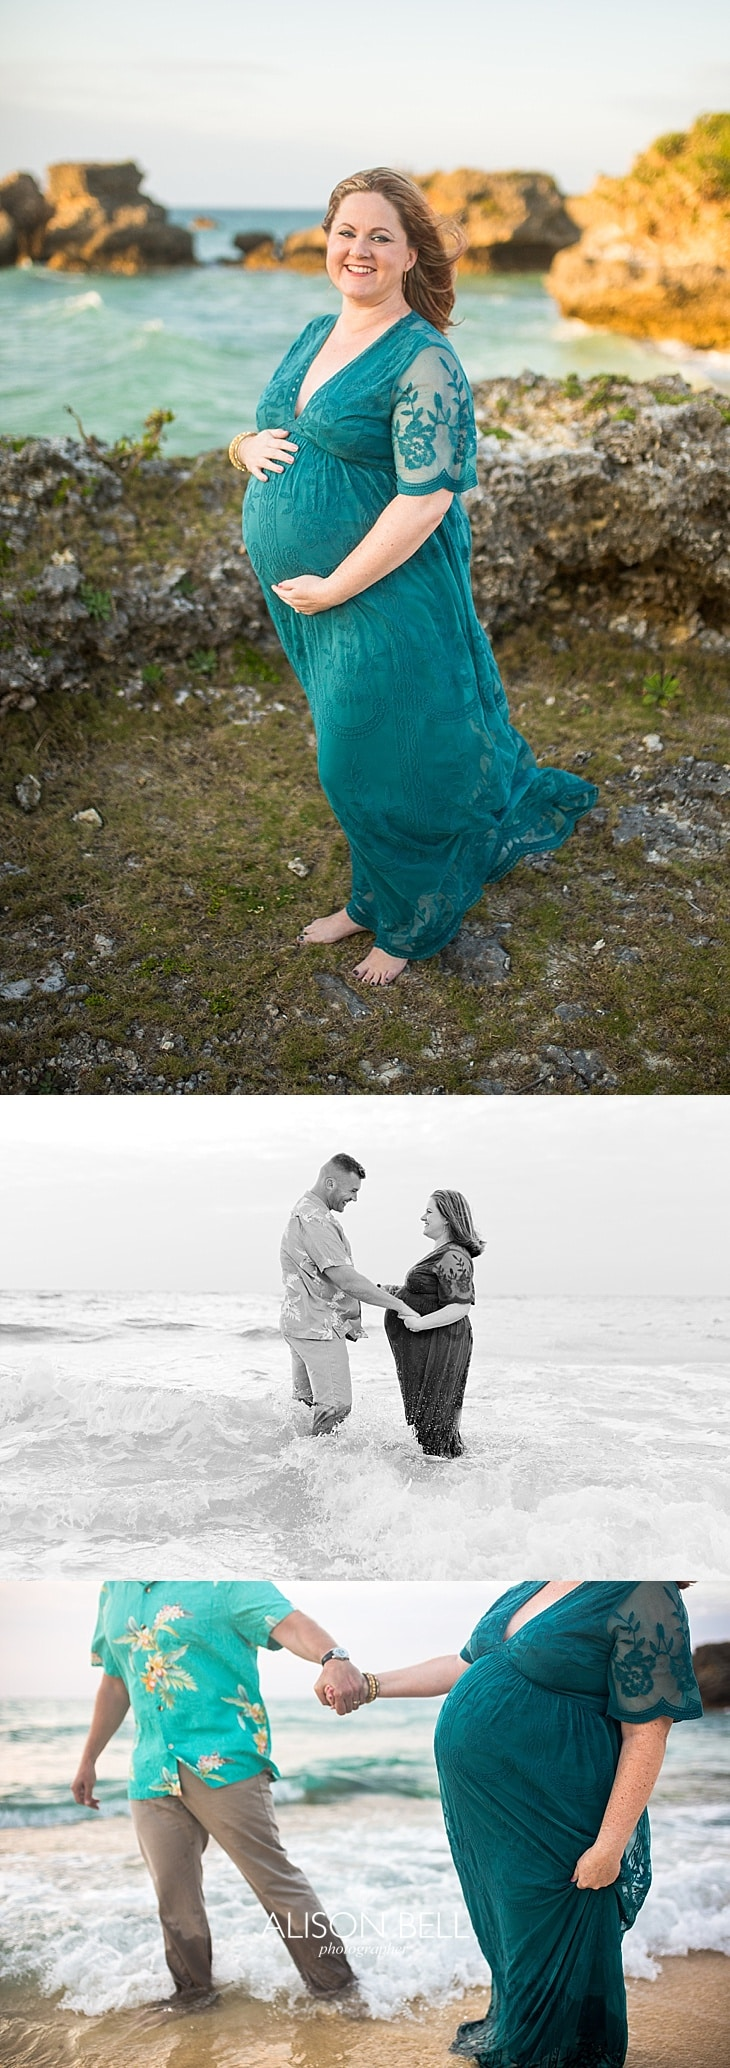 Beach maternity couples photography, okinawa Japan Alison Bell Photographer